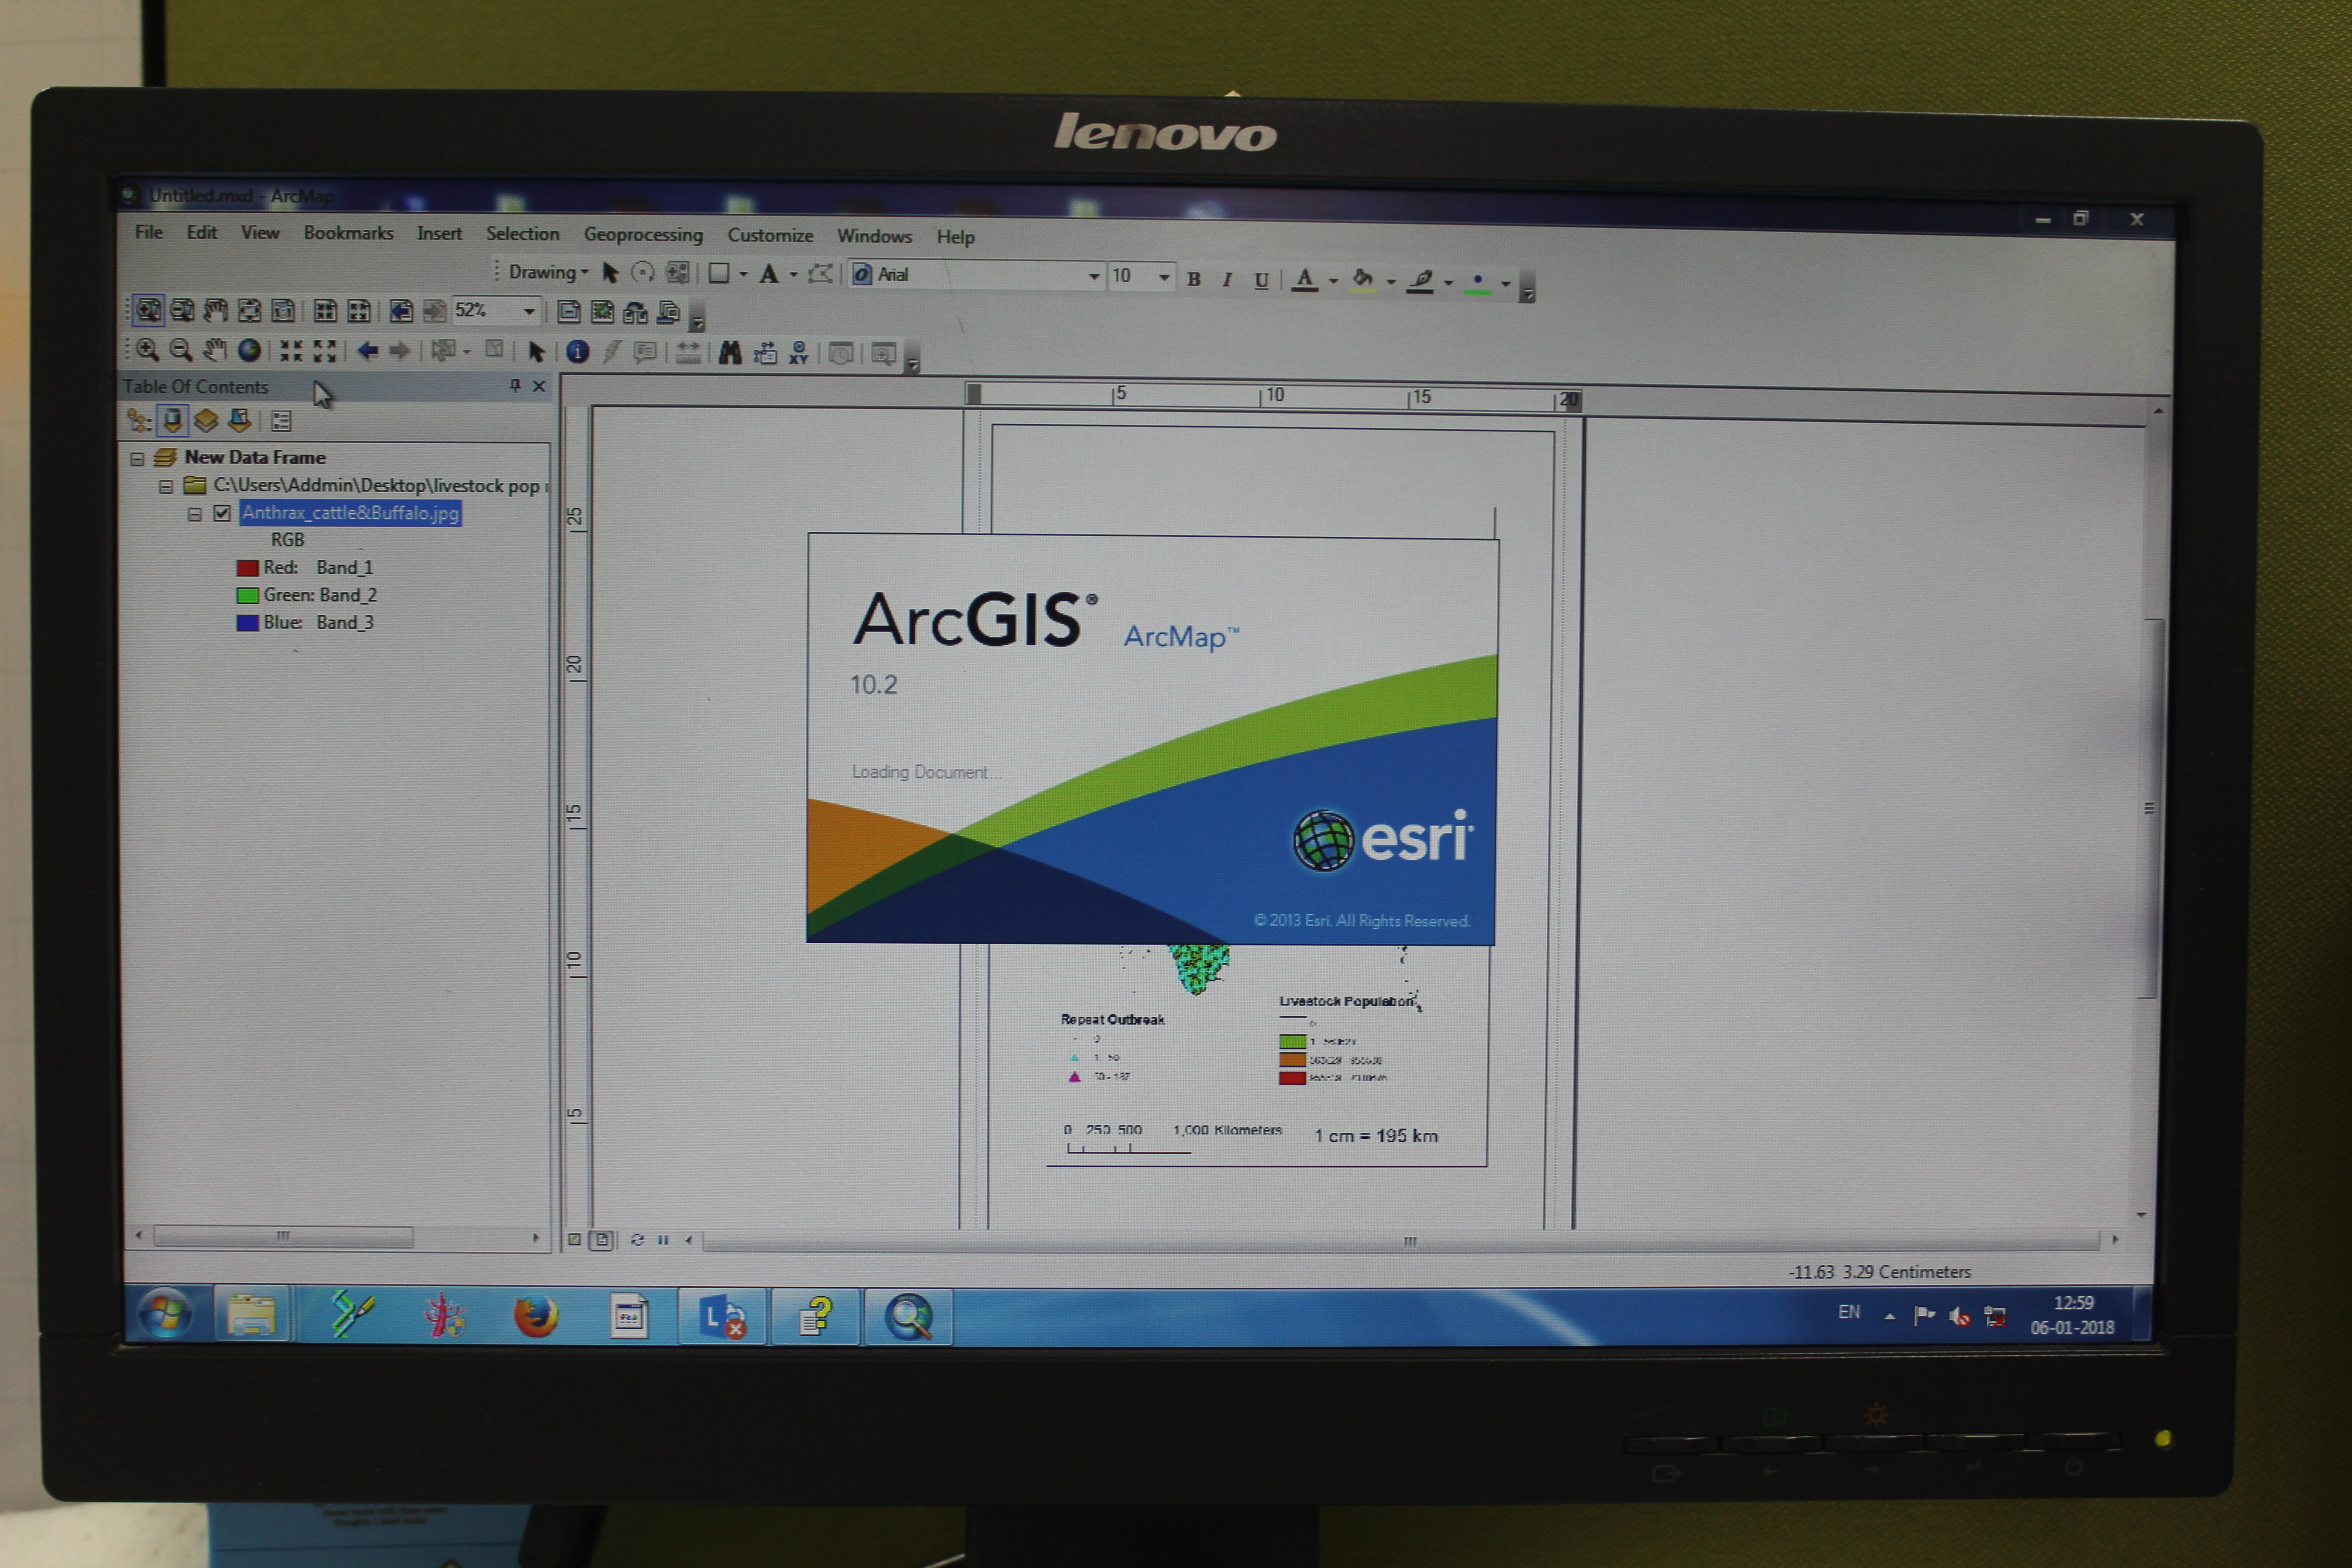 ArcGIS software